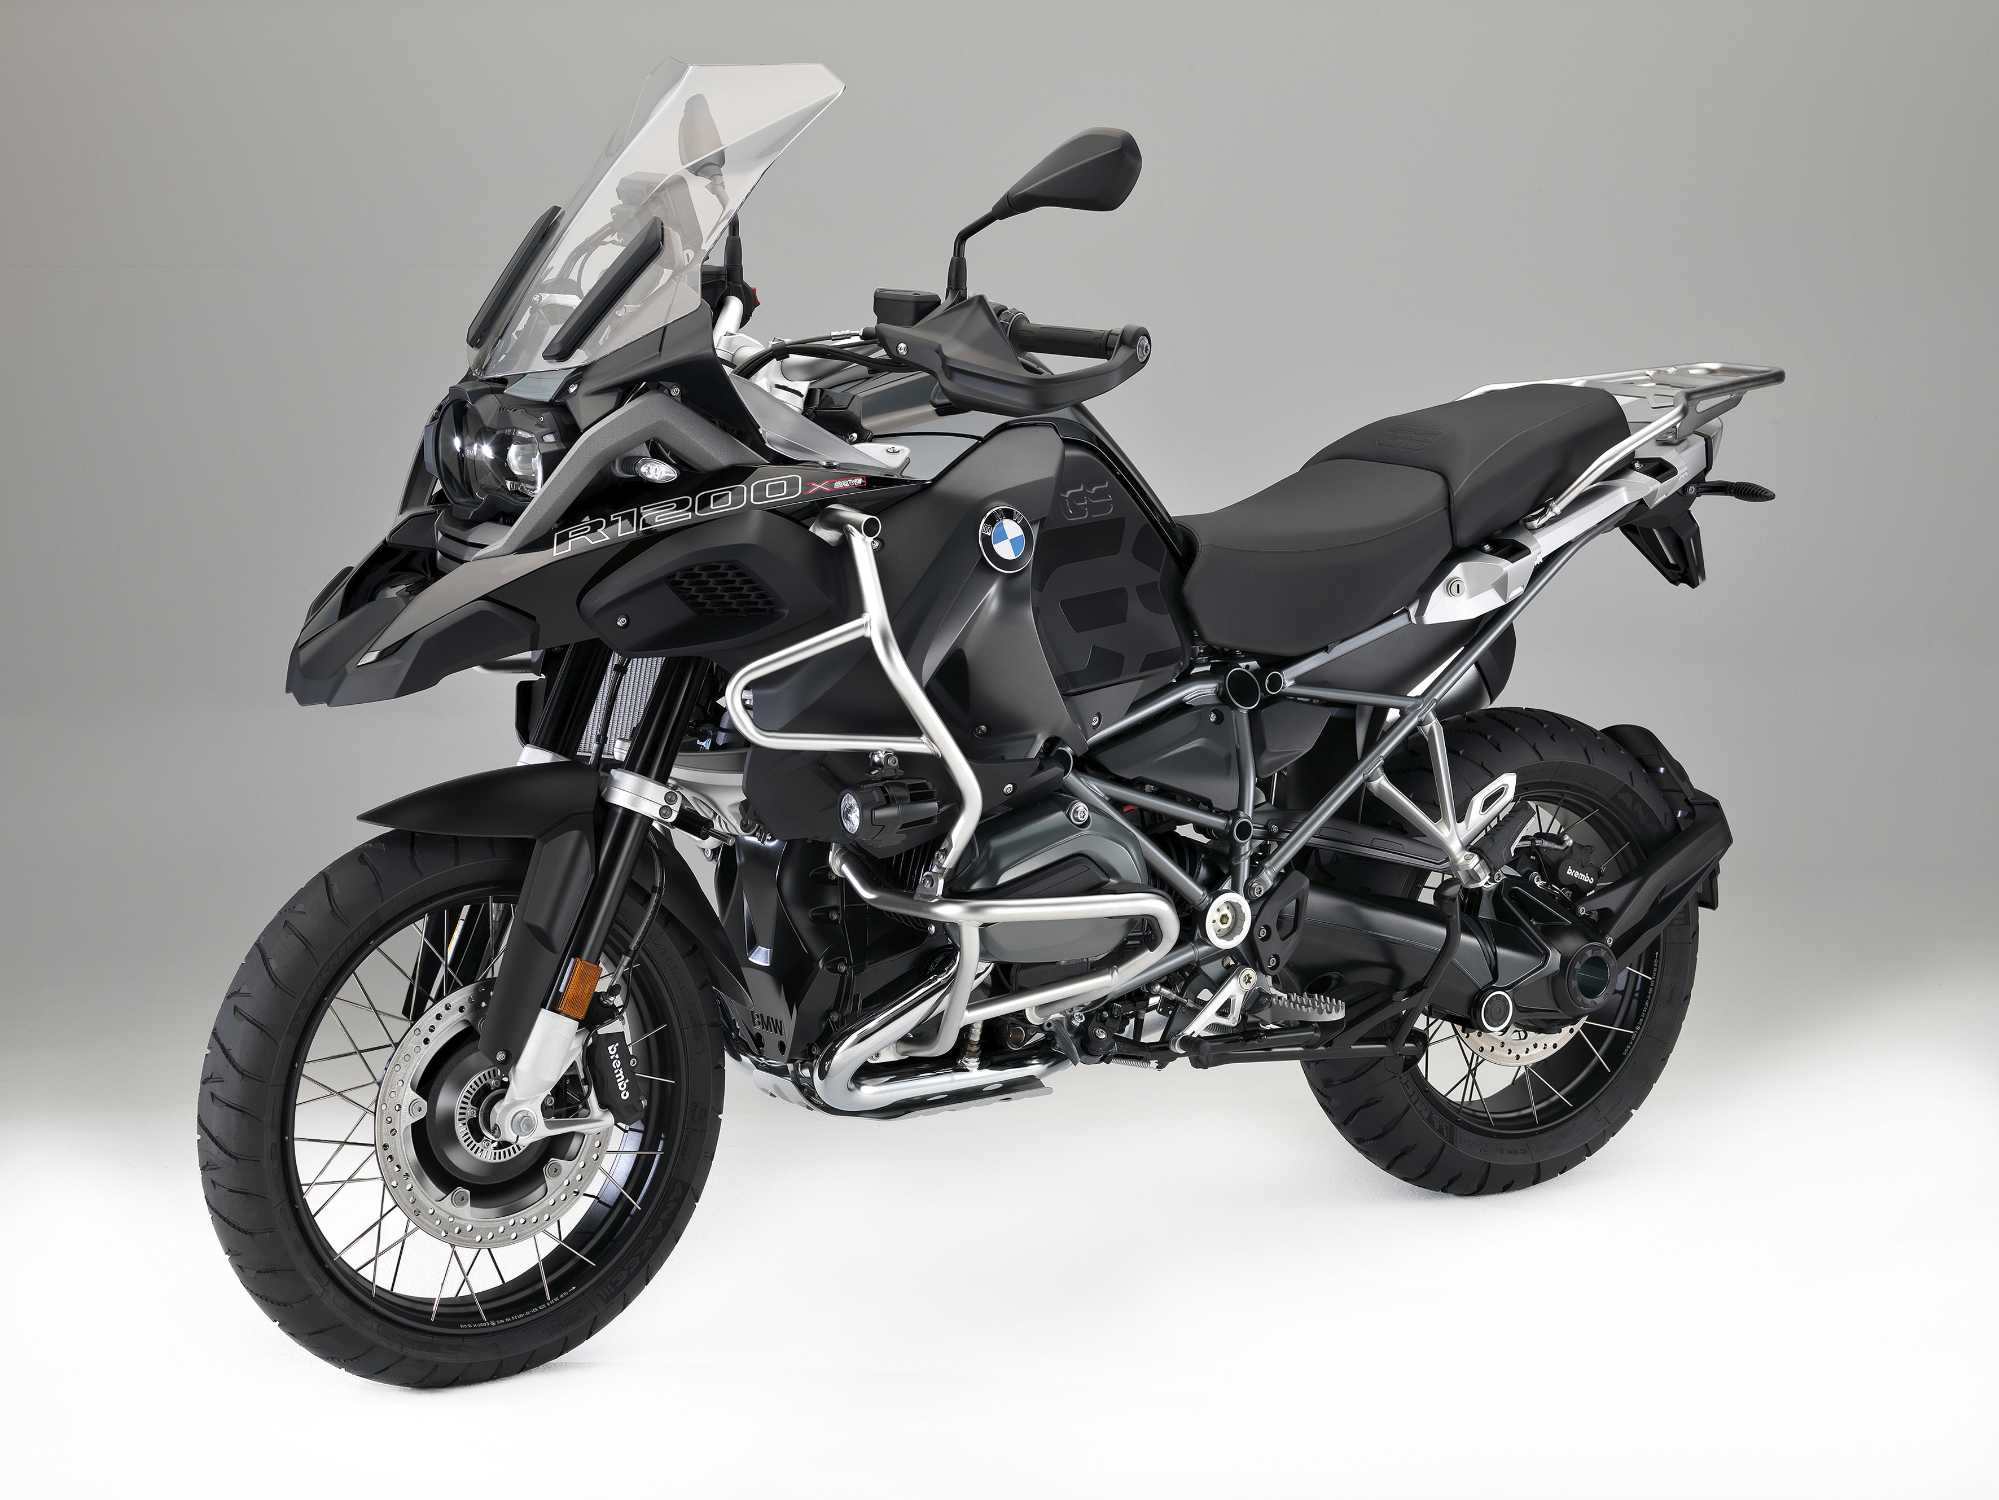 69 The Best BMW Gs Adventure 2020 Research New